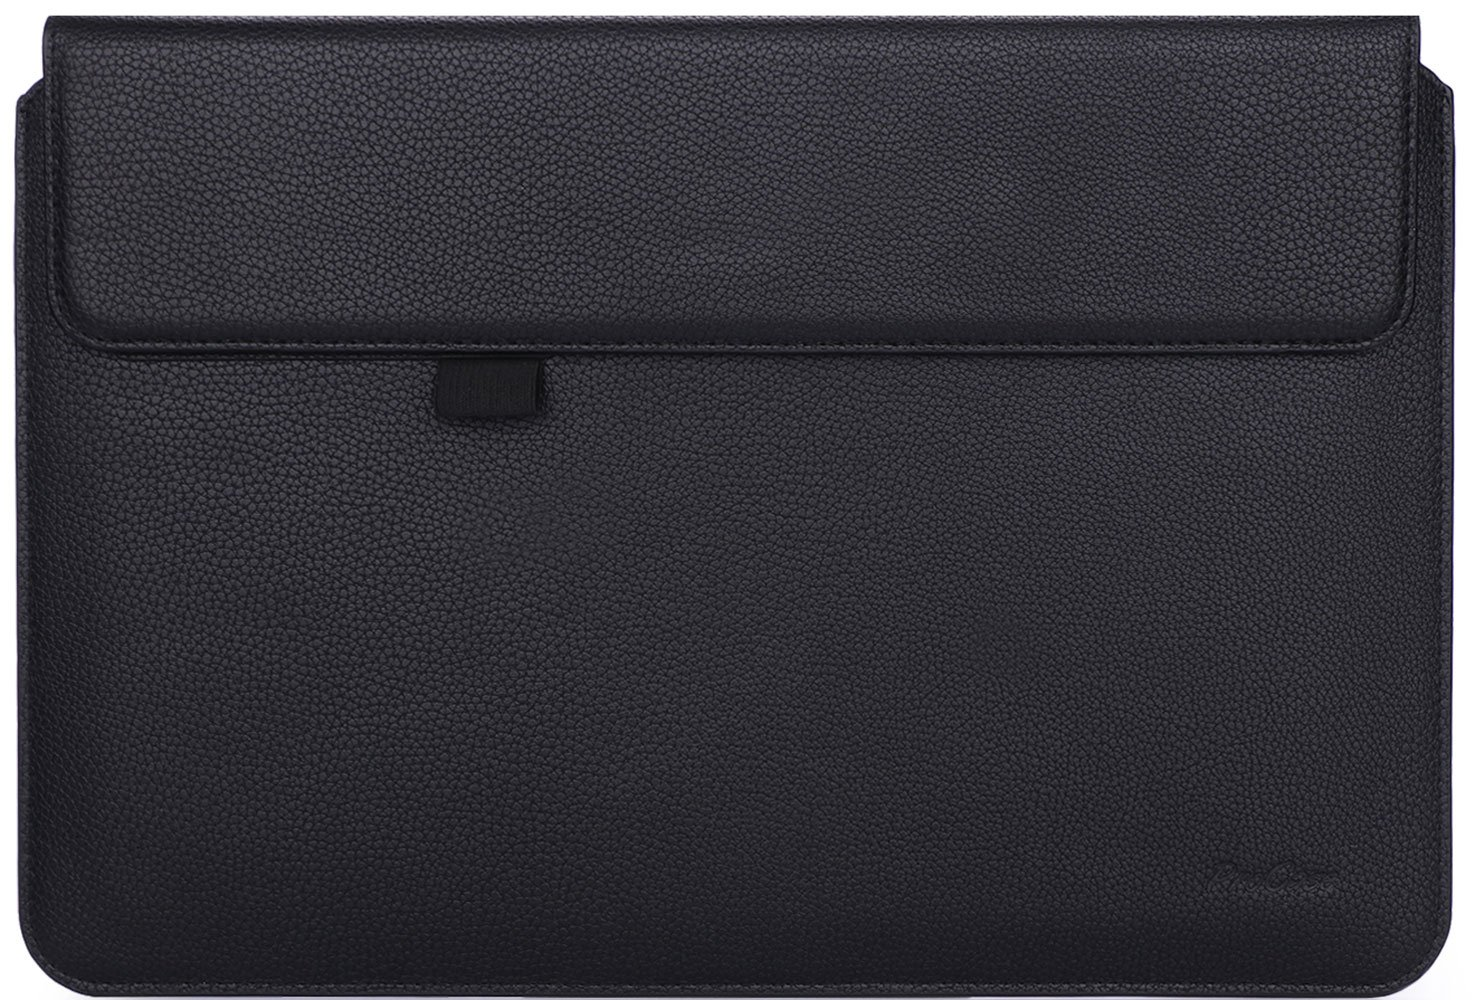 ProCase New Surface Pro Case / Surface Pro 4 3 Sleeve Case, 12 Inch Sleeve Bag Laptop Tablet Protective Cover for New Microsoft Surface Pro 2017 / Pro 4 3, Compatible with Type Cover Keyboard -Black